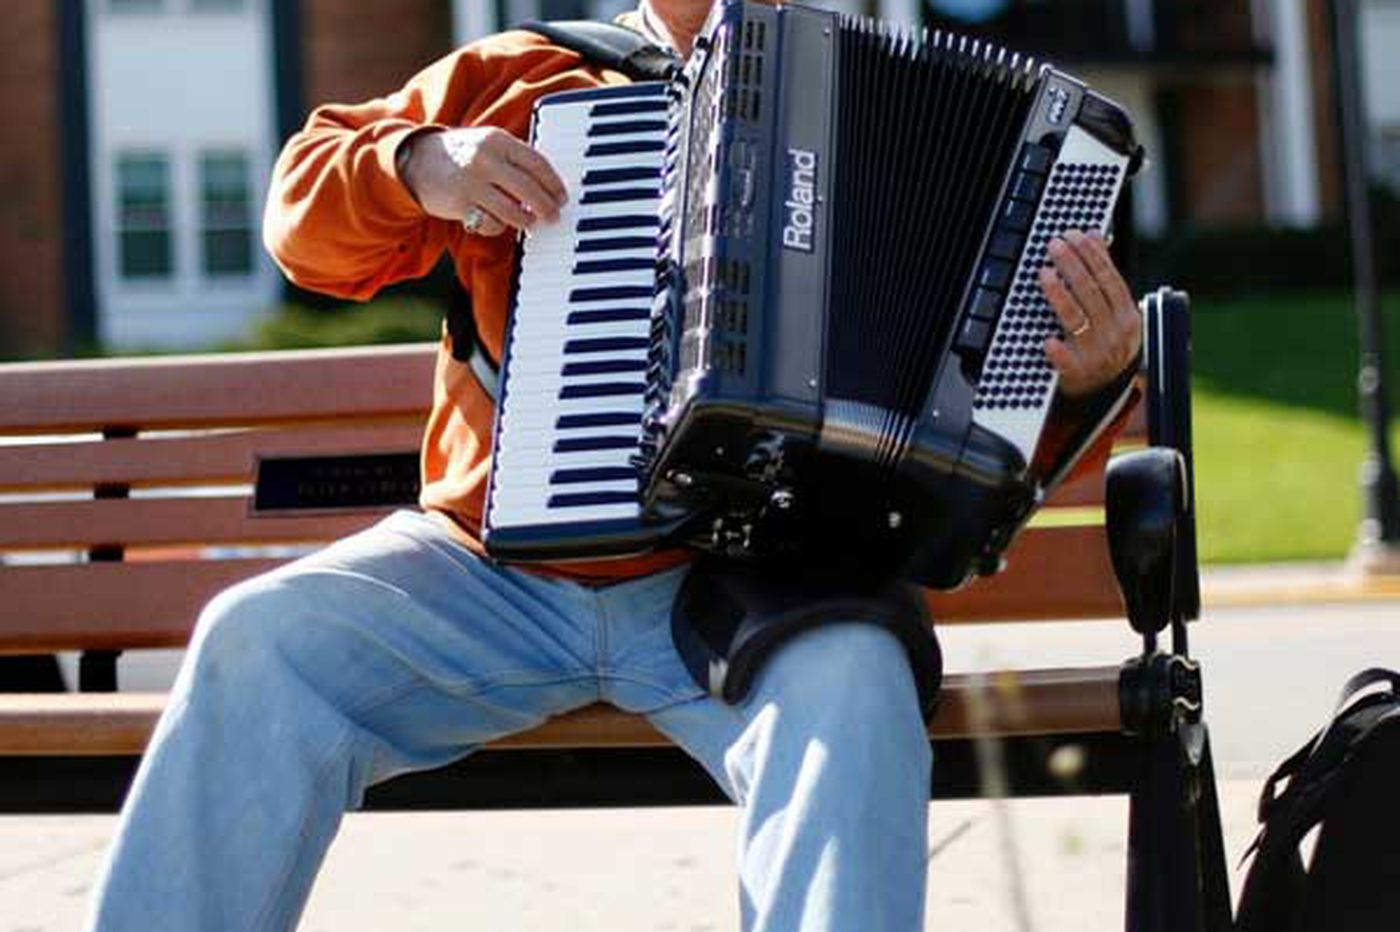 The squeeze box is accorded new respect